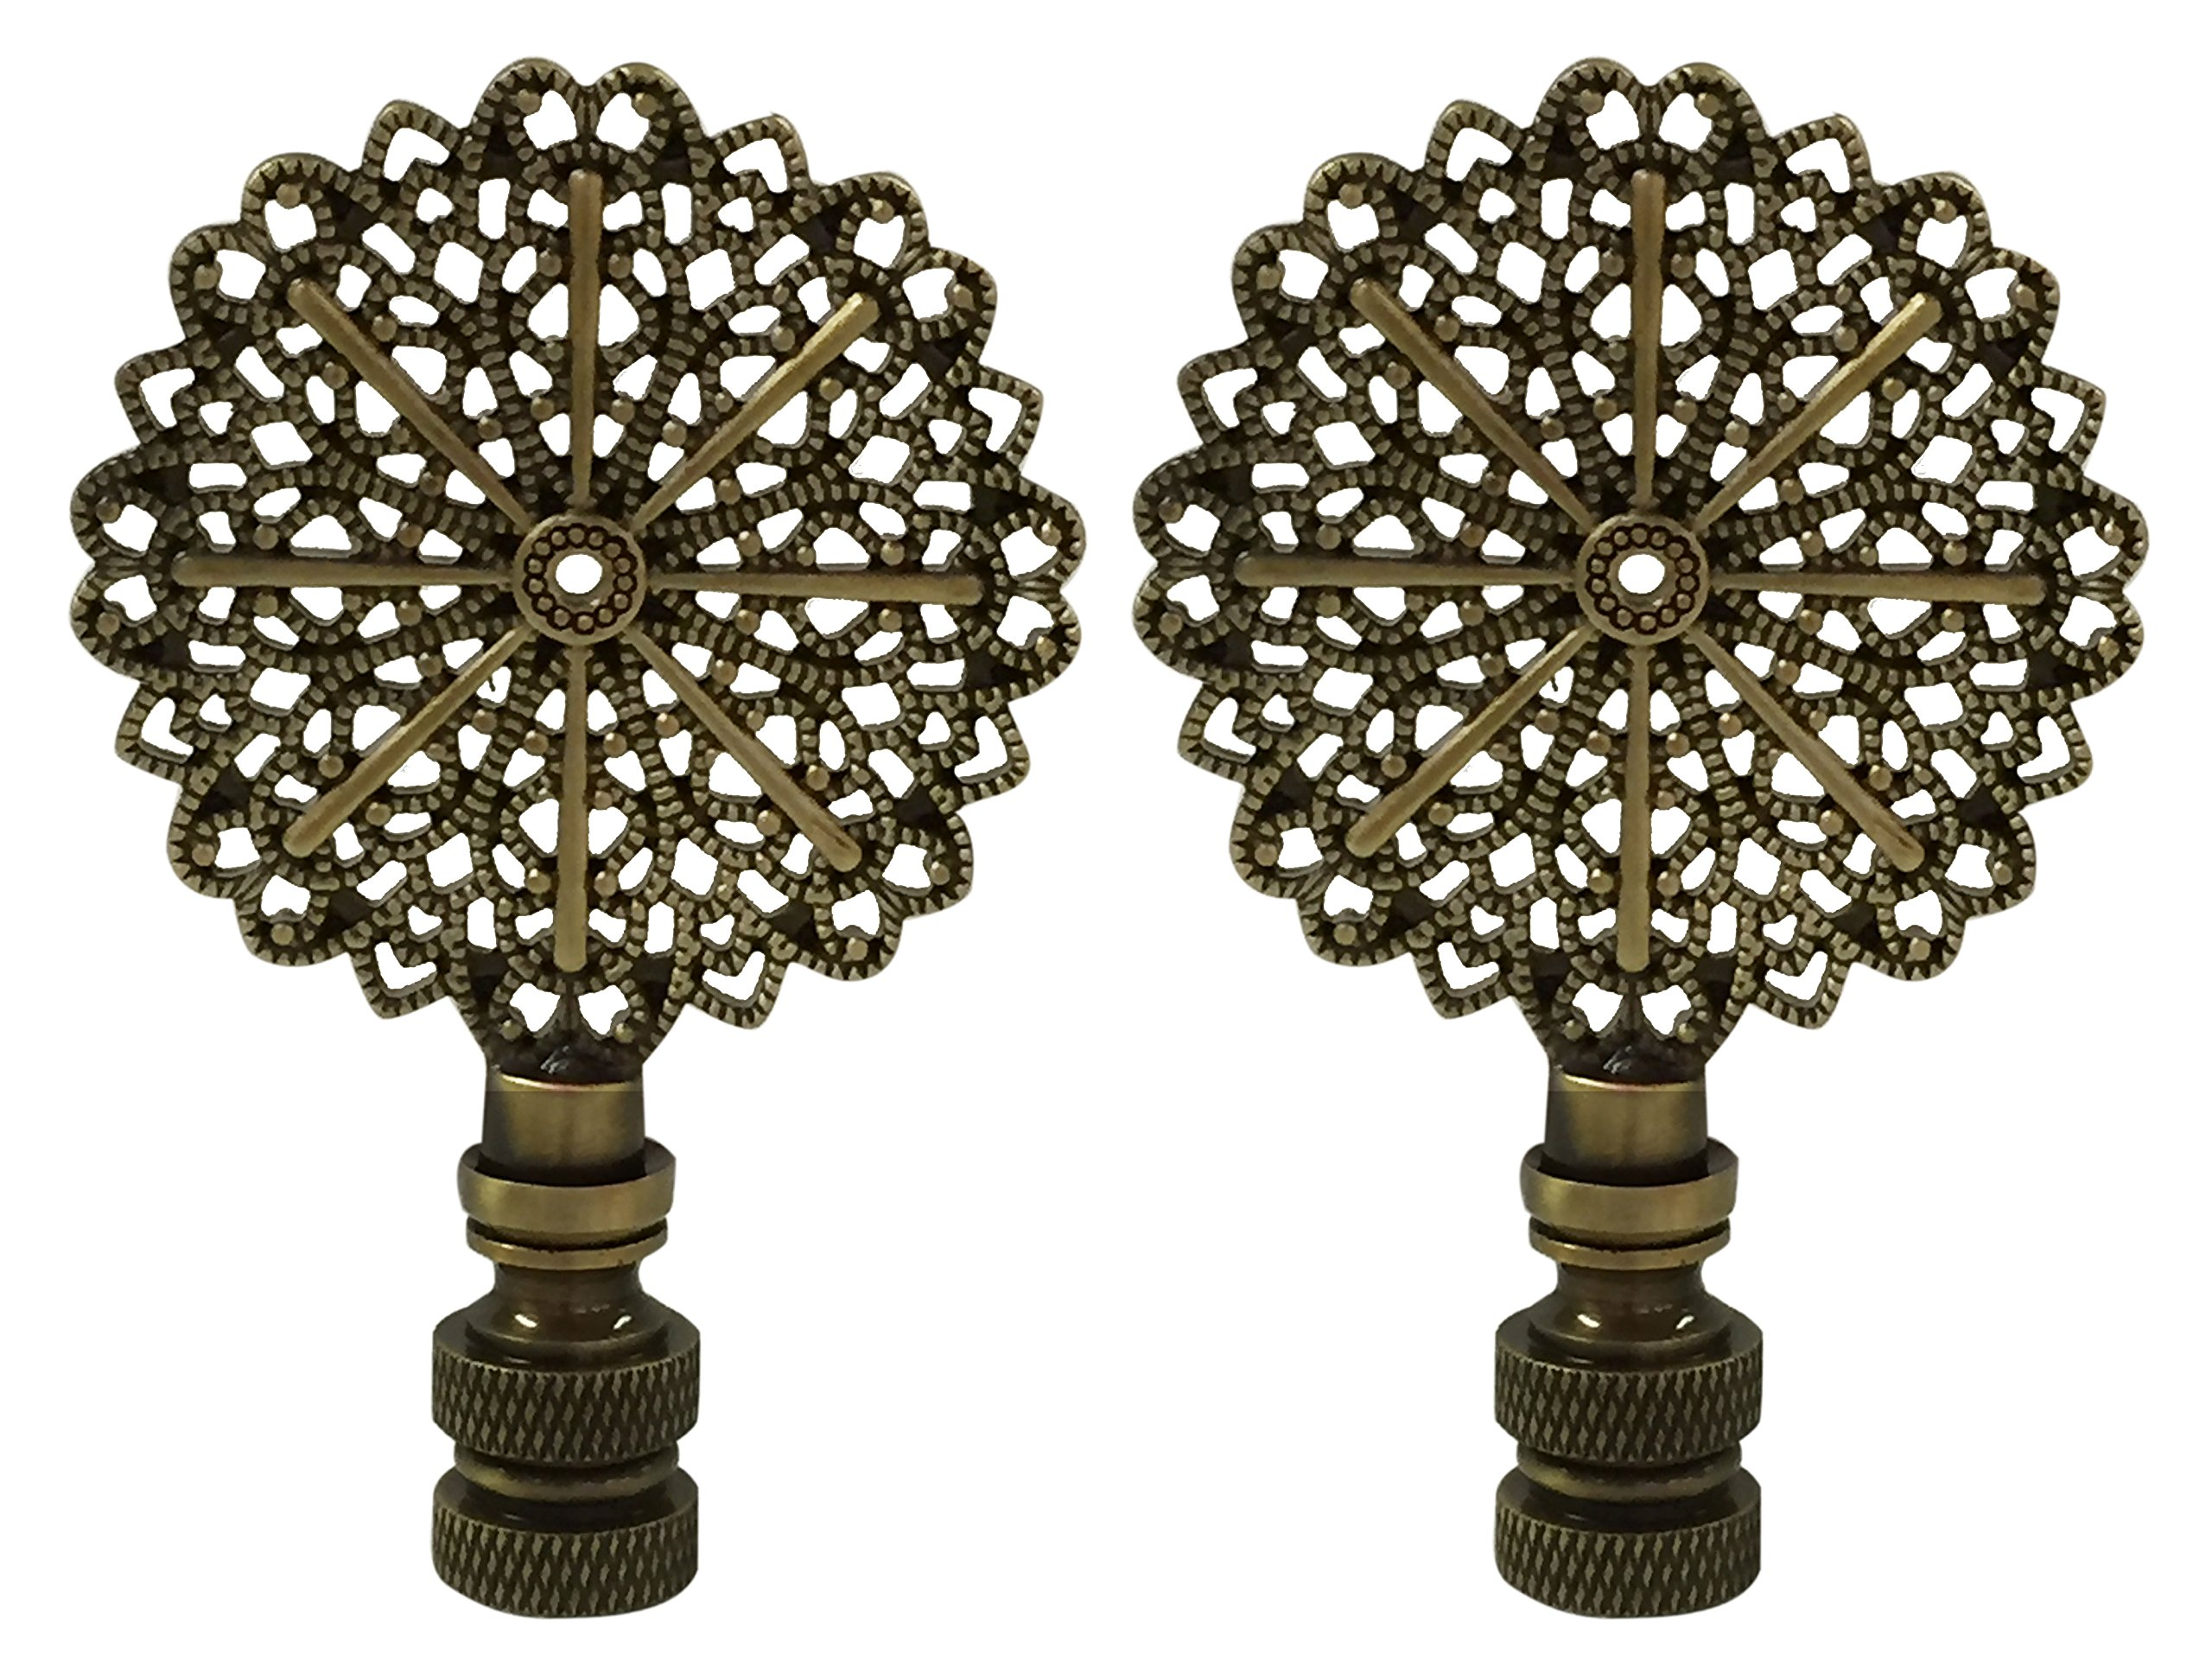 Royal Designs Traditional European Filigree Lamp Finial for Lamp Shade- Antique Brass Set of 2